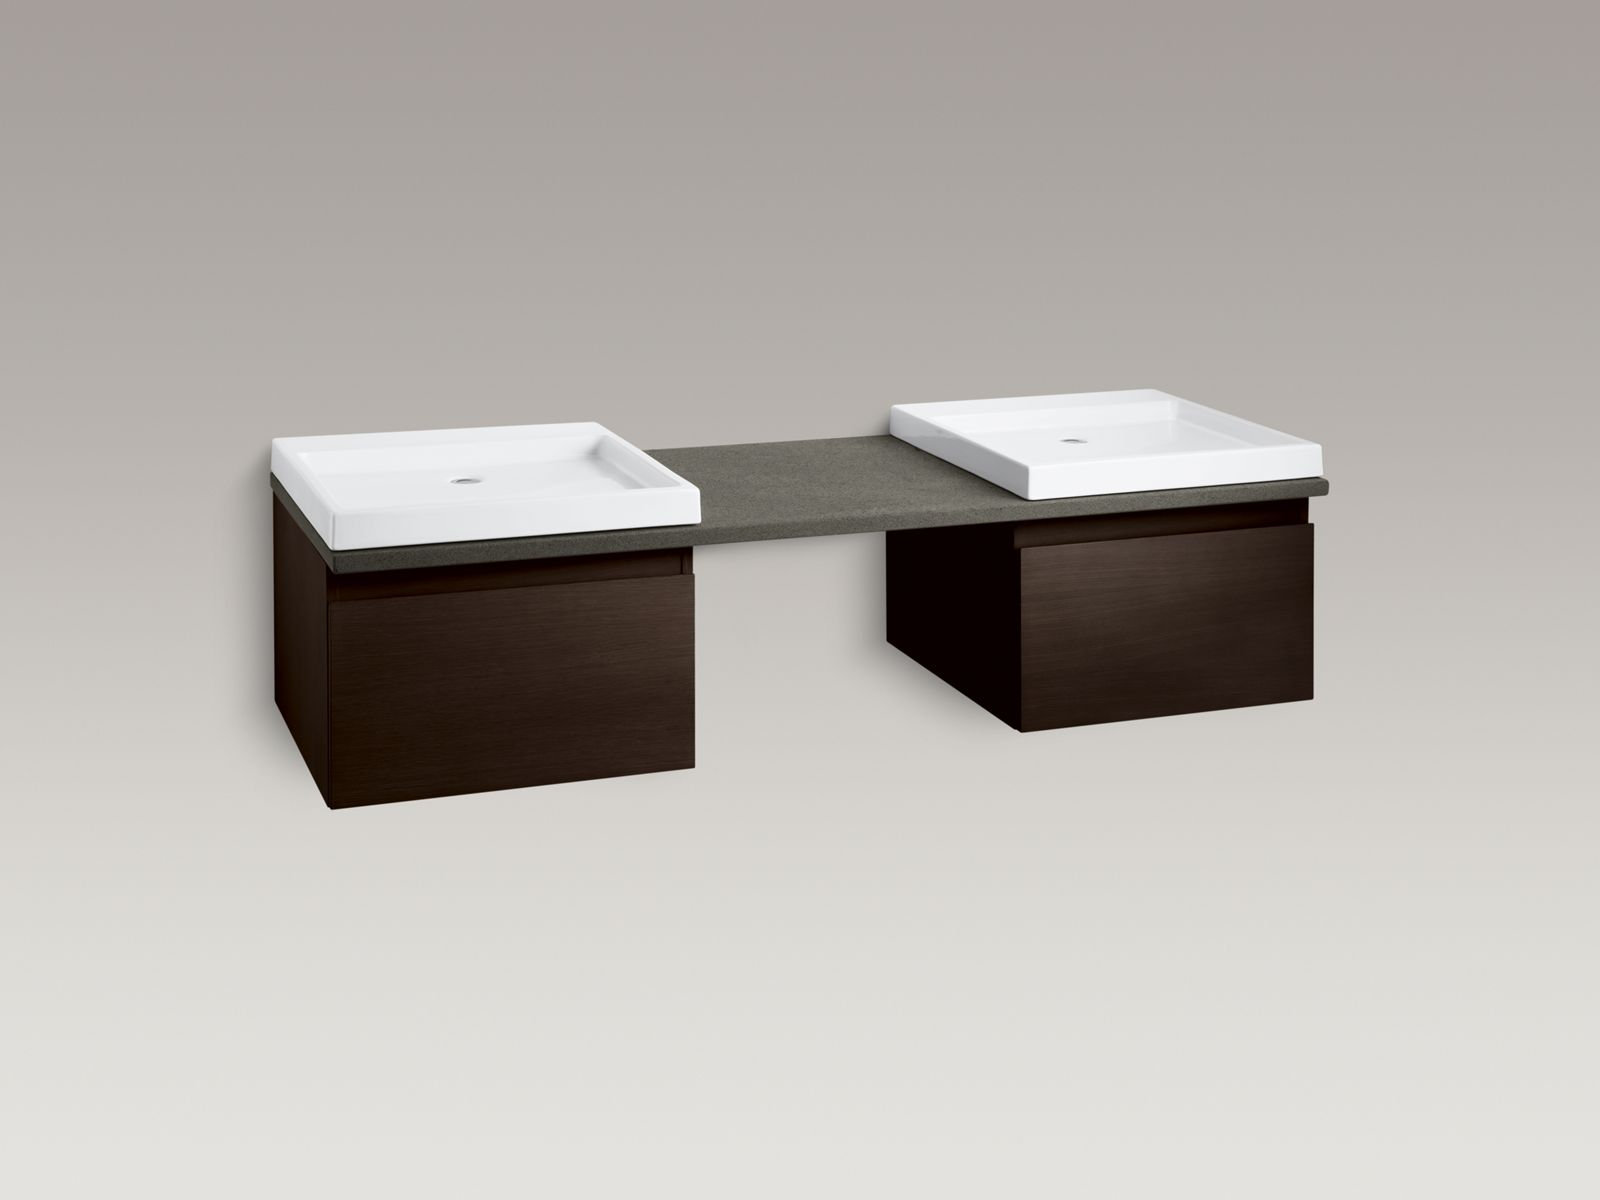 Shown with Purist® vanity K-3081-F5, Wading Pool® lavatory K-2314-0 and standard pop-up drain, not included.